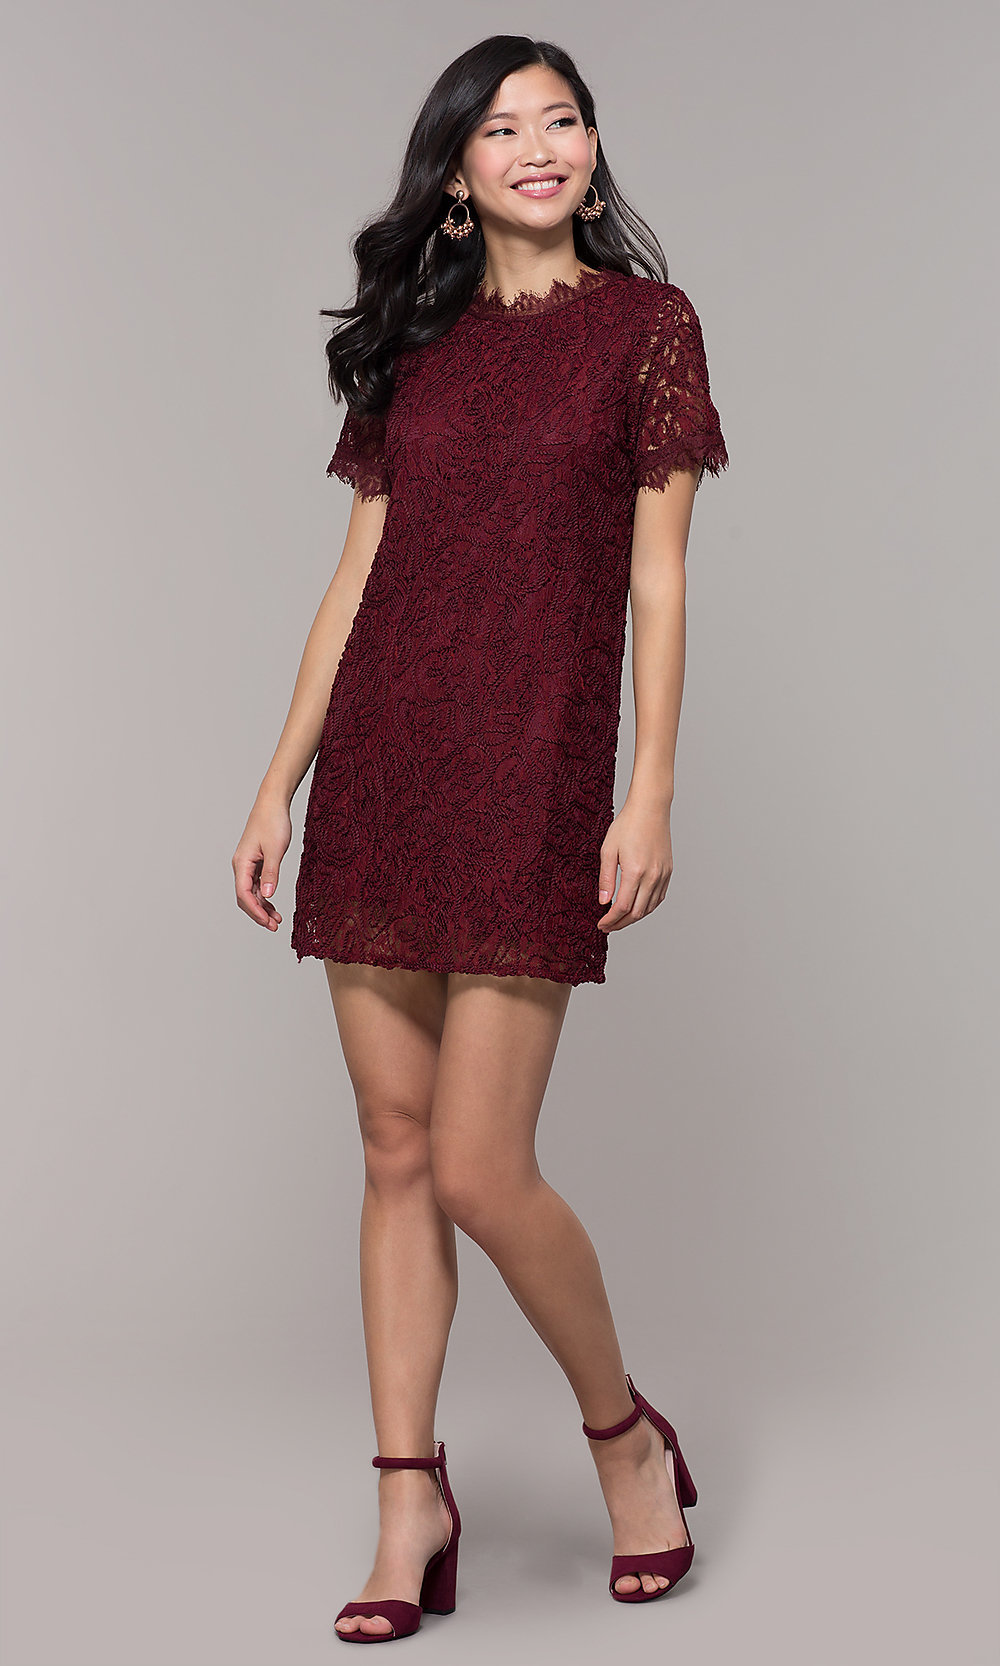 Lace High-Neck Wine Red Wedding-Guest Dress